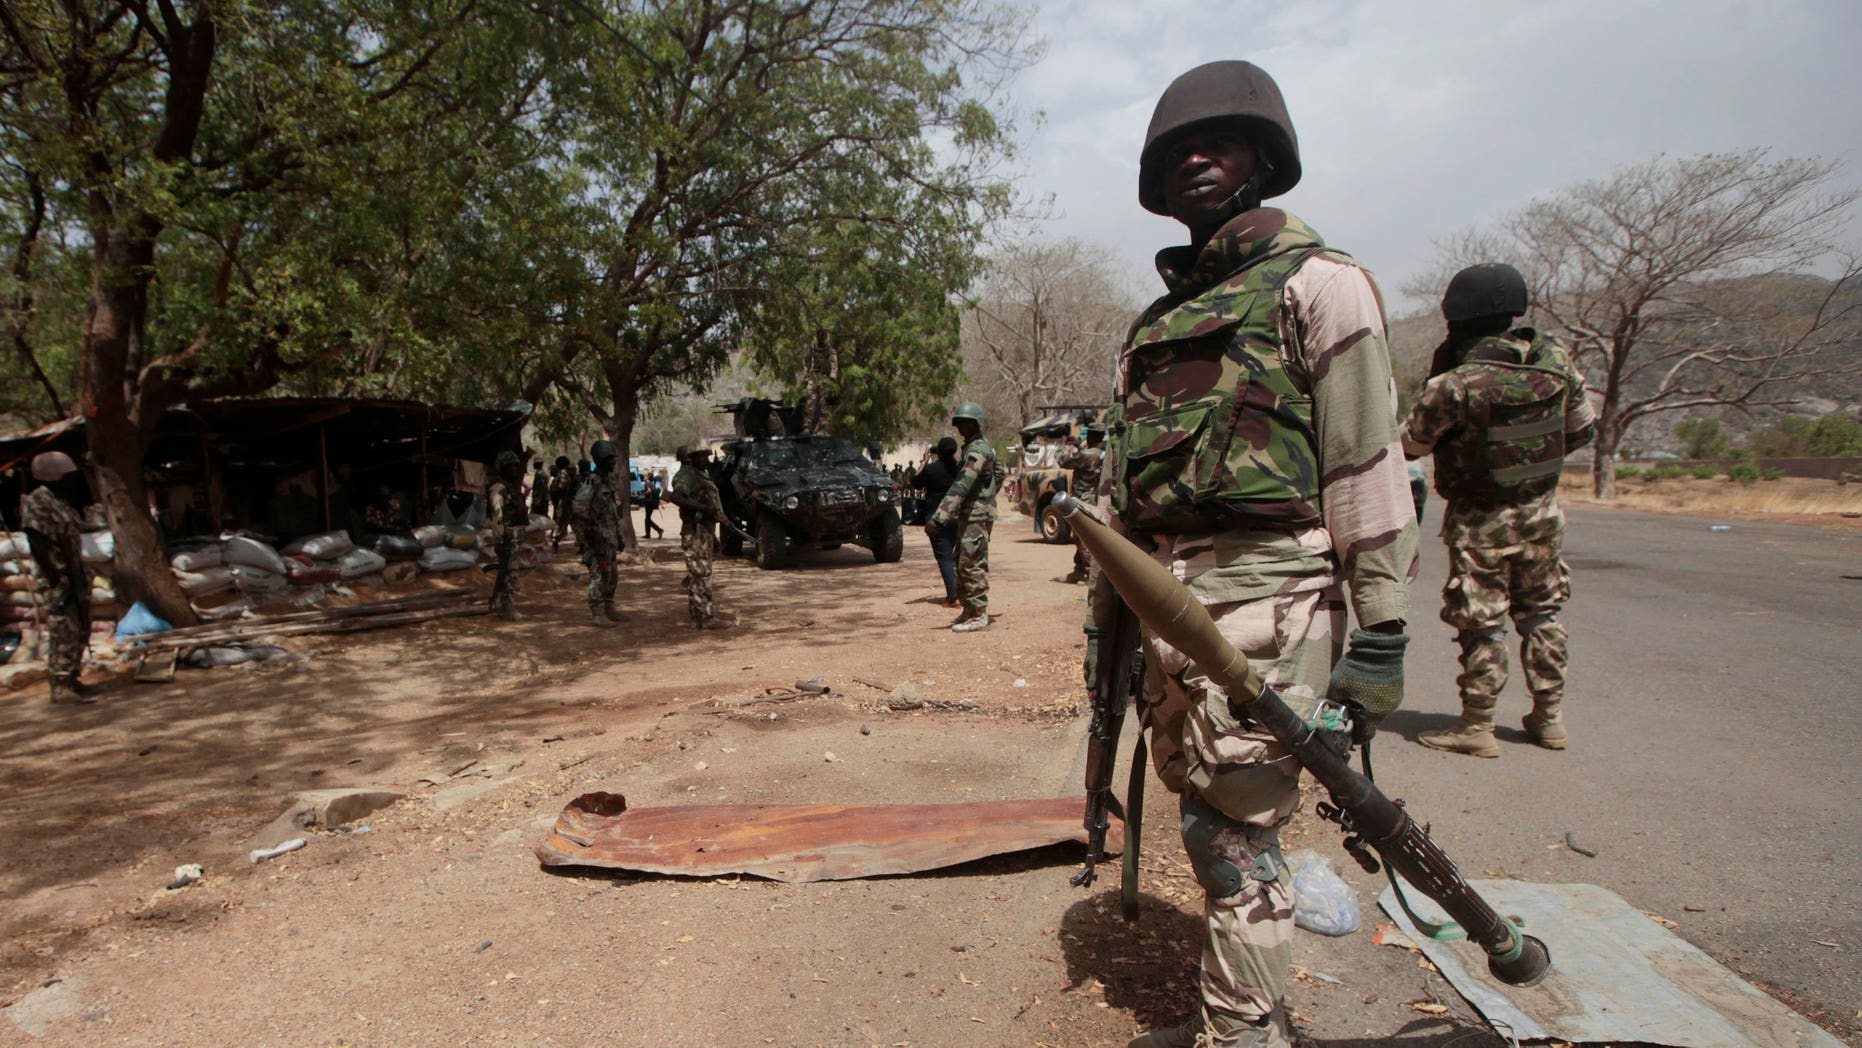 Rann: Army denies killing of 60 by Boko Haram